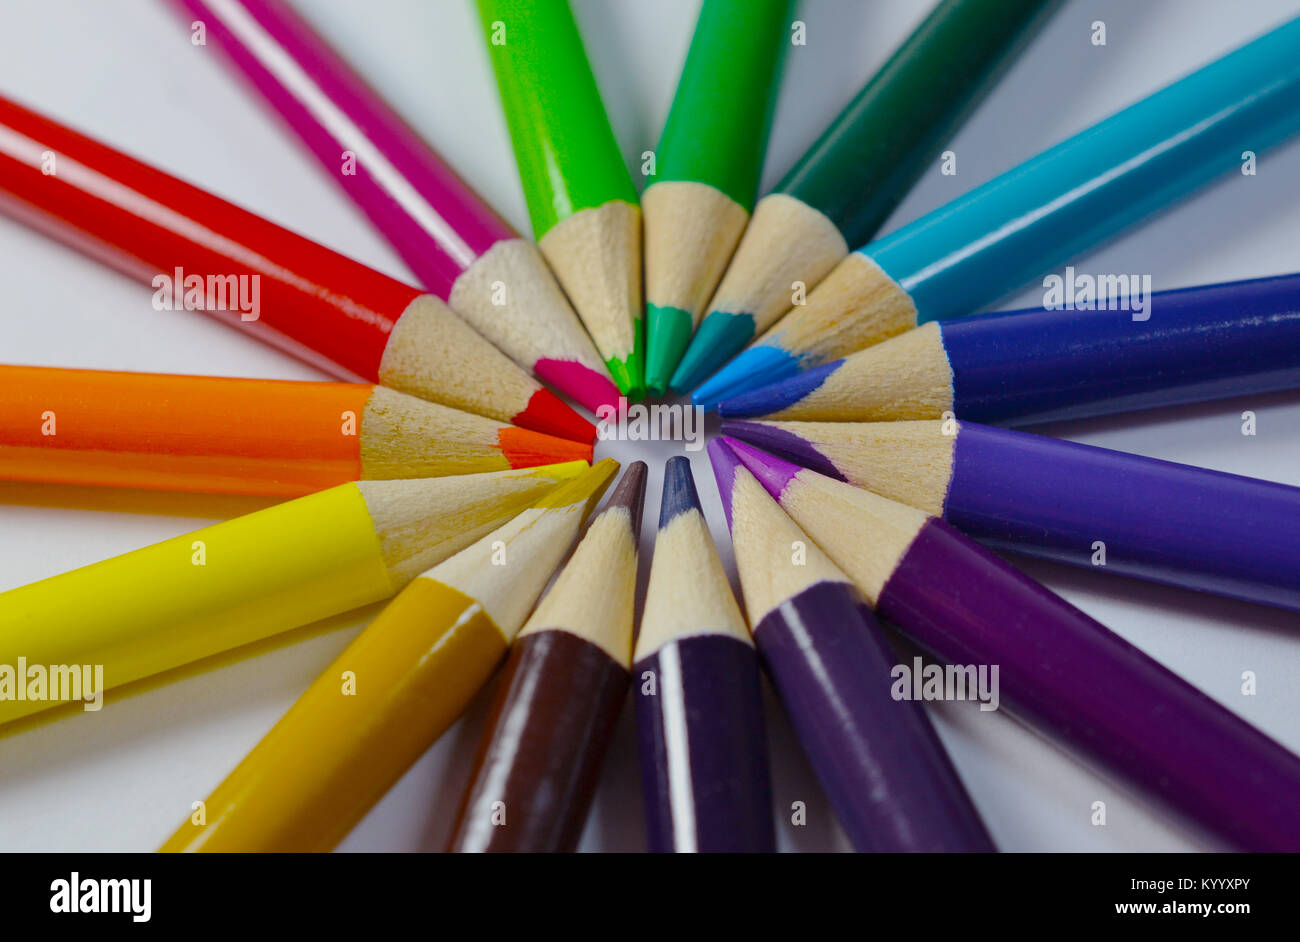 Colored Pencils arranged in a circle - Stock Image